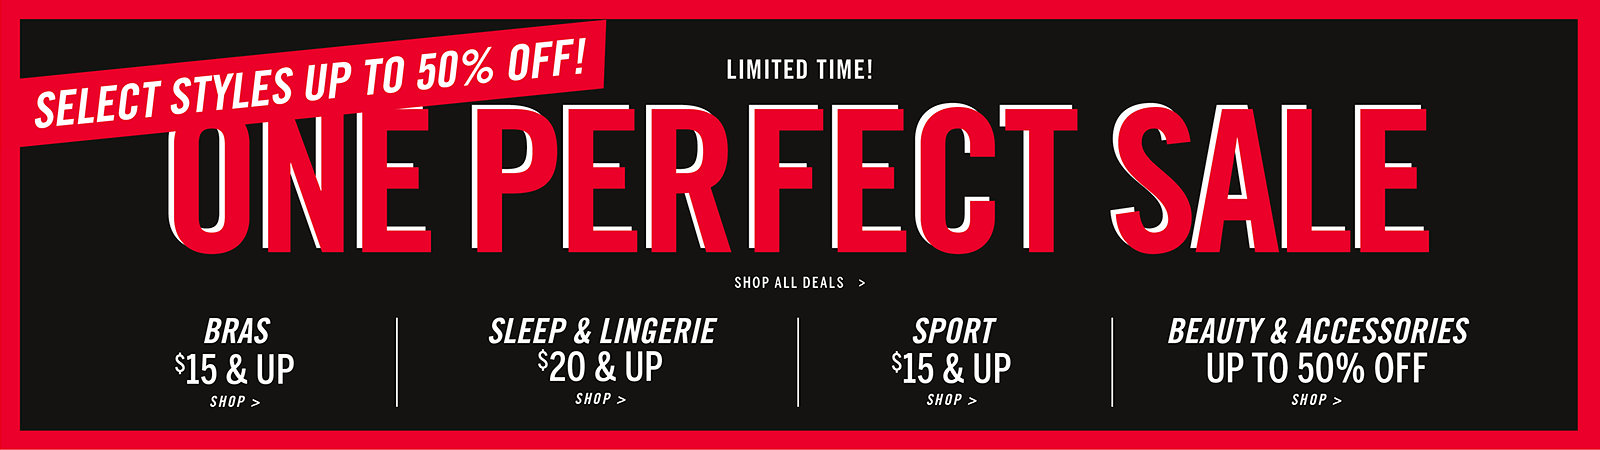 85be06ad3ad One Perfect Sale. Select Styles Up To 50% Off! Shop all deals.Limited Time!  One Perfect Sale. Select Styles Up To 50% Off! Beauty and Accessories Up To  50% ...